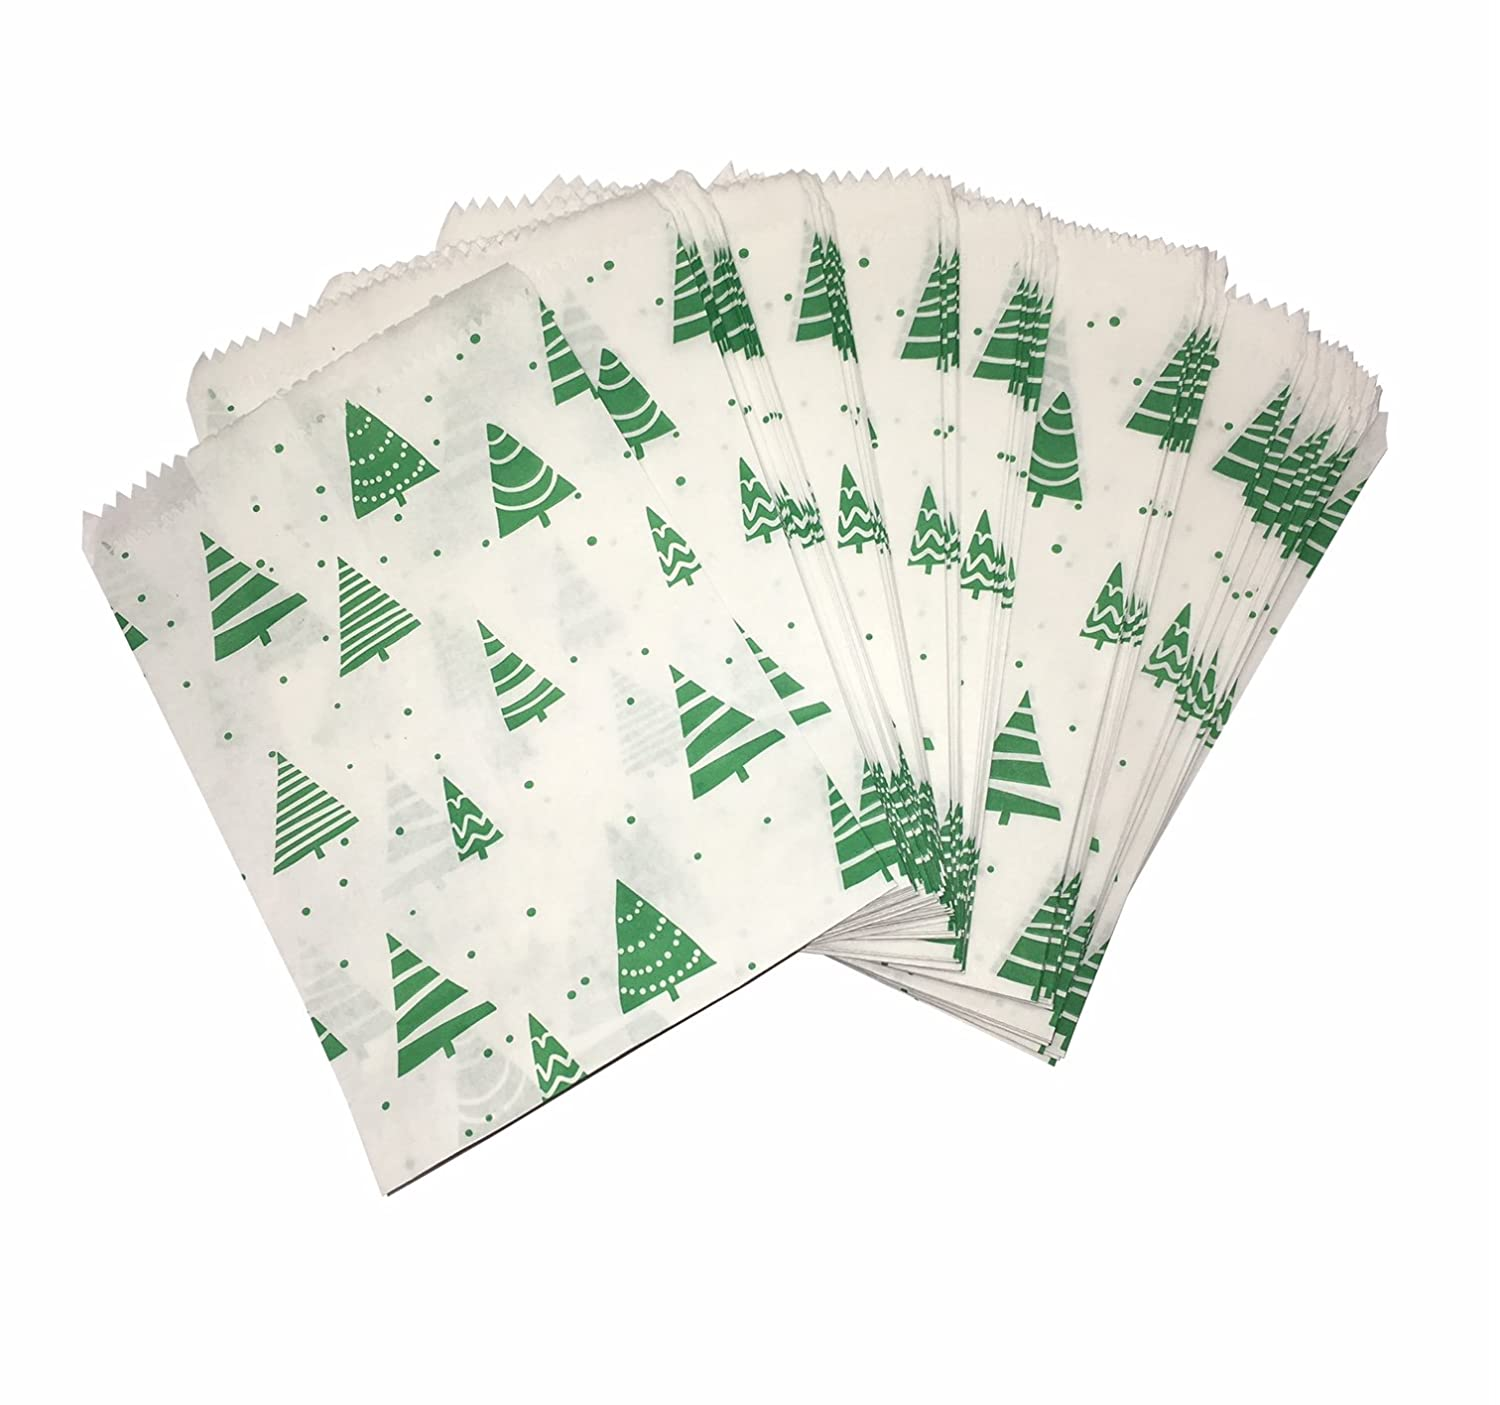 100x Christmas Tree Design Paper Bags - 5